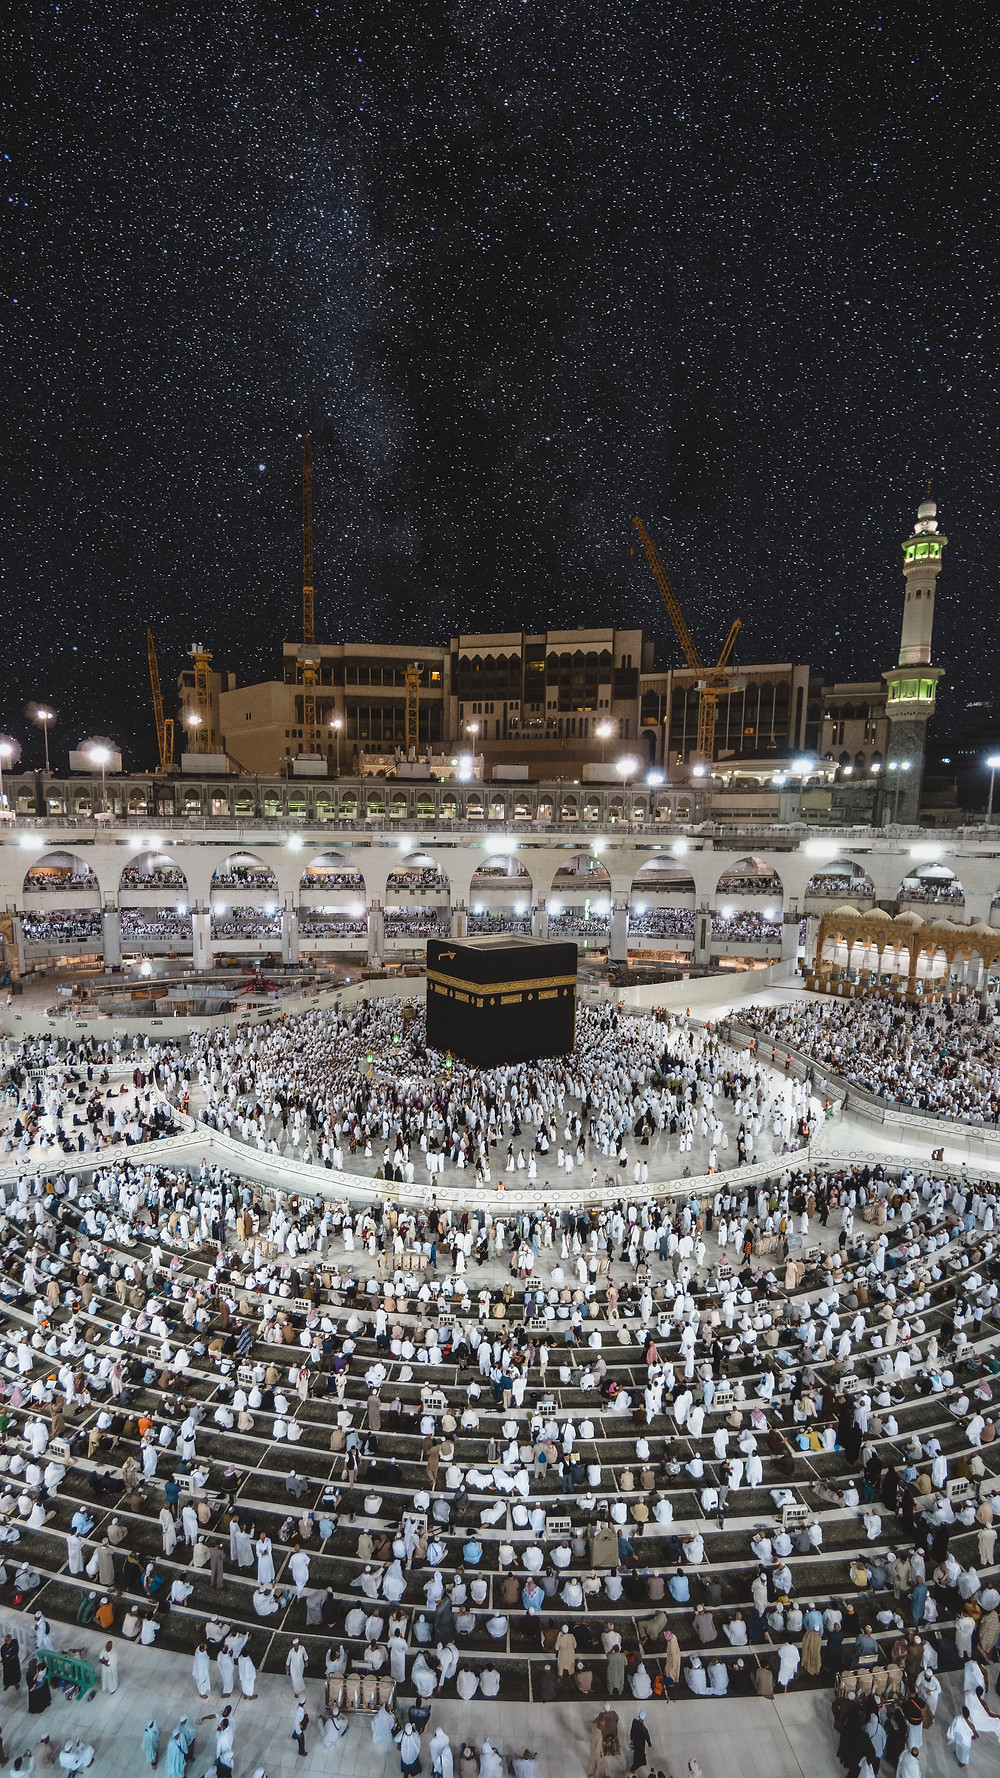 The Holy Mosque in Mecca, the Kaaba in the center